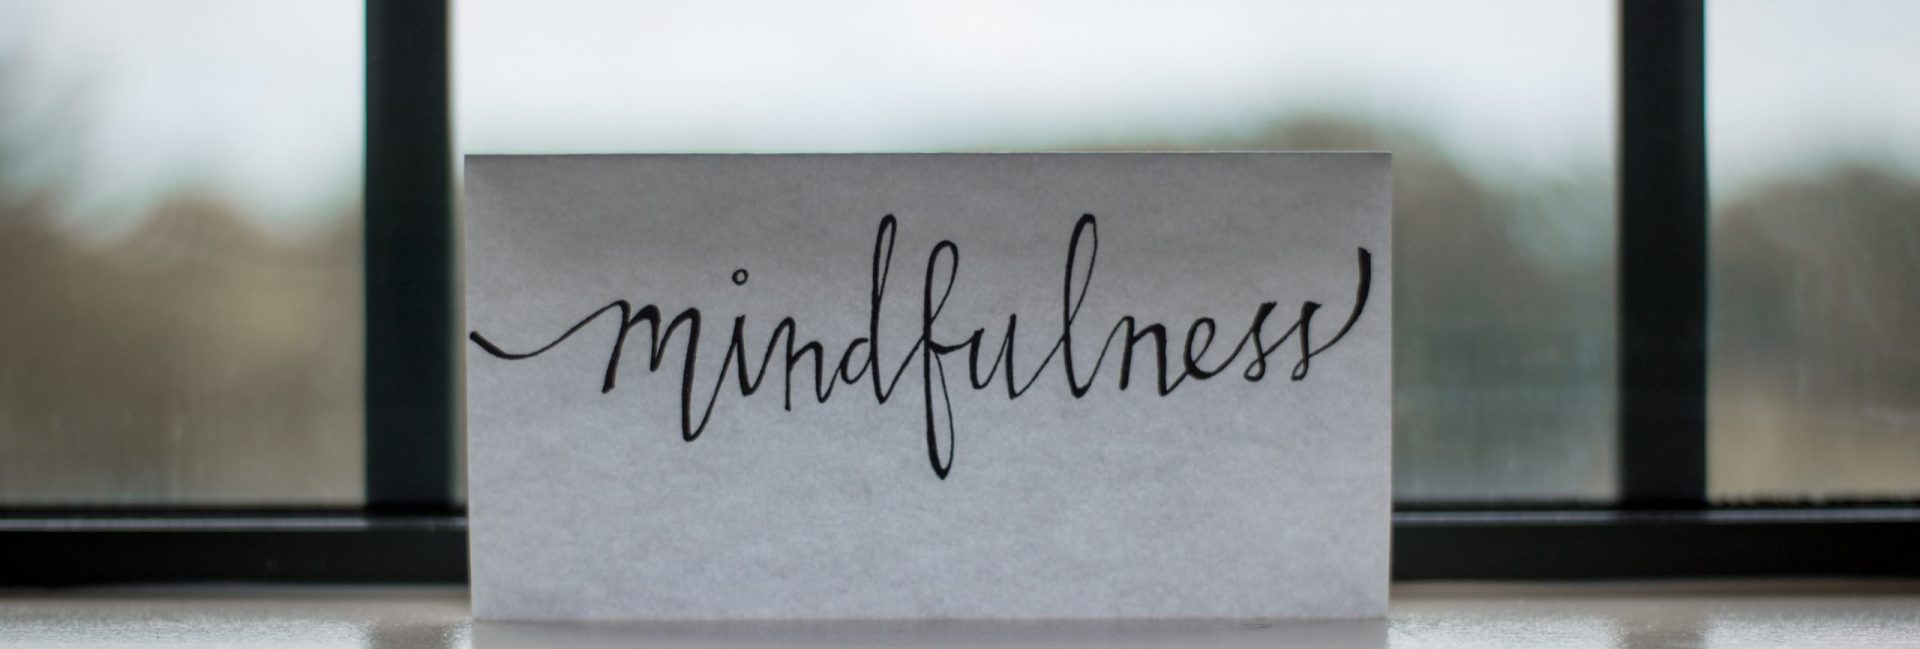 note in front of a window, with nice hand writing saying mindfulness